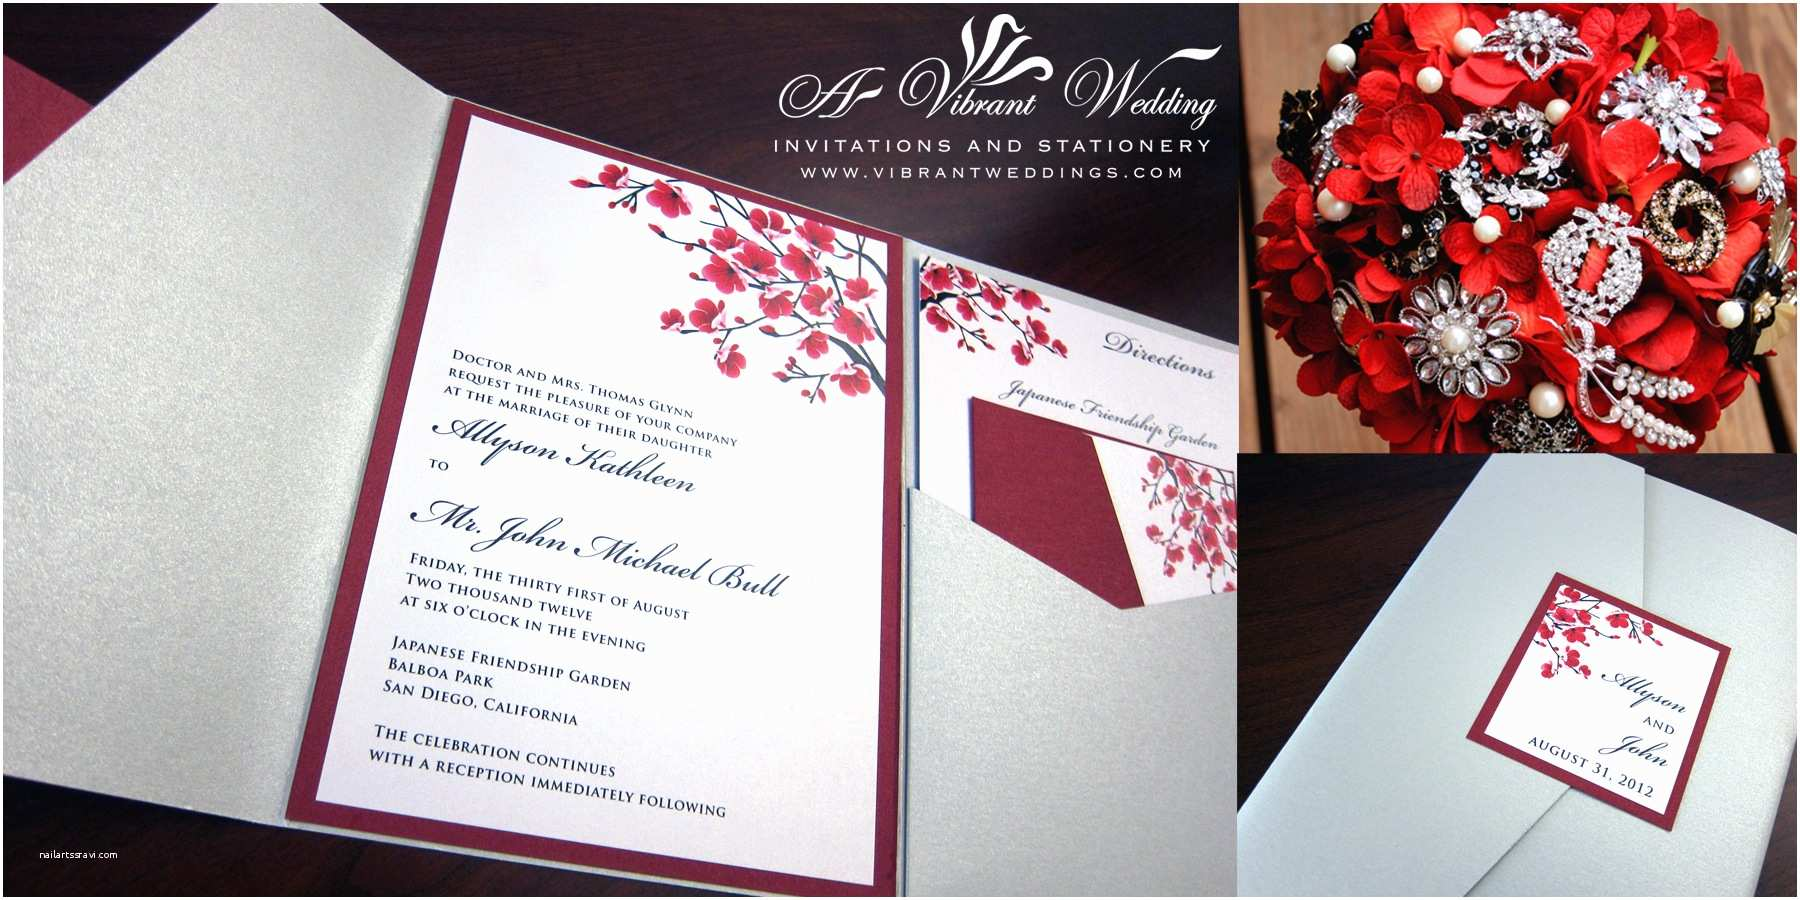 Red White and Silver Wedding Invitations Silver and Red Wedding Invitation